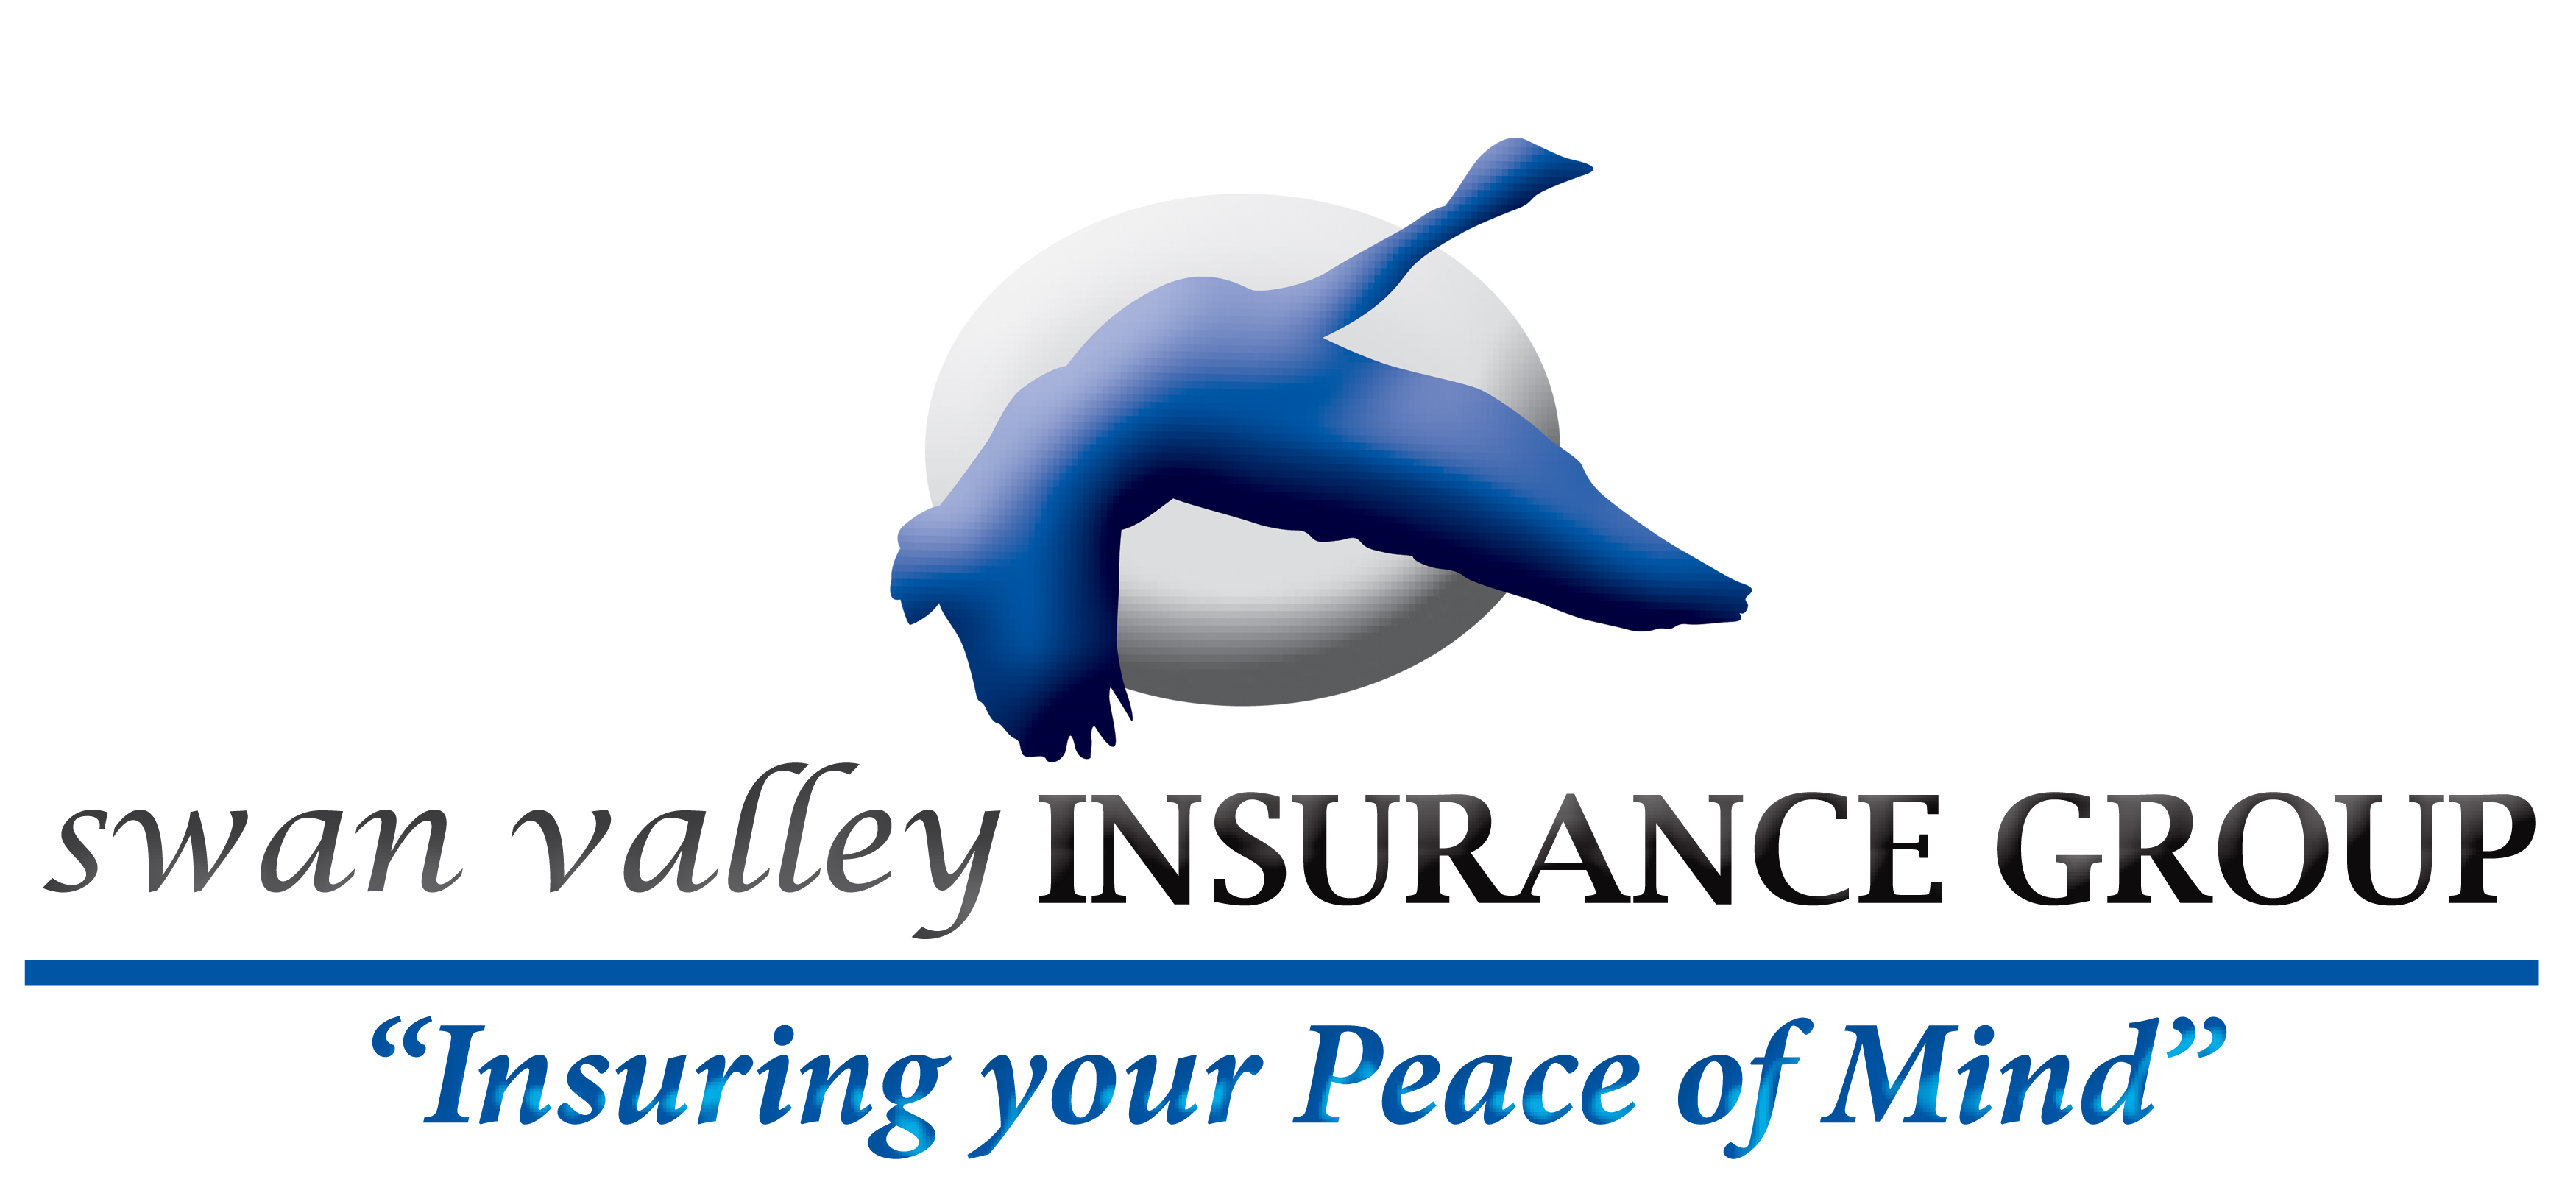 Swan Valley Insurance Group Ltd.